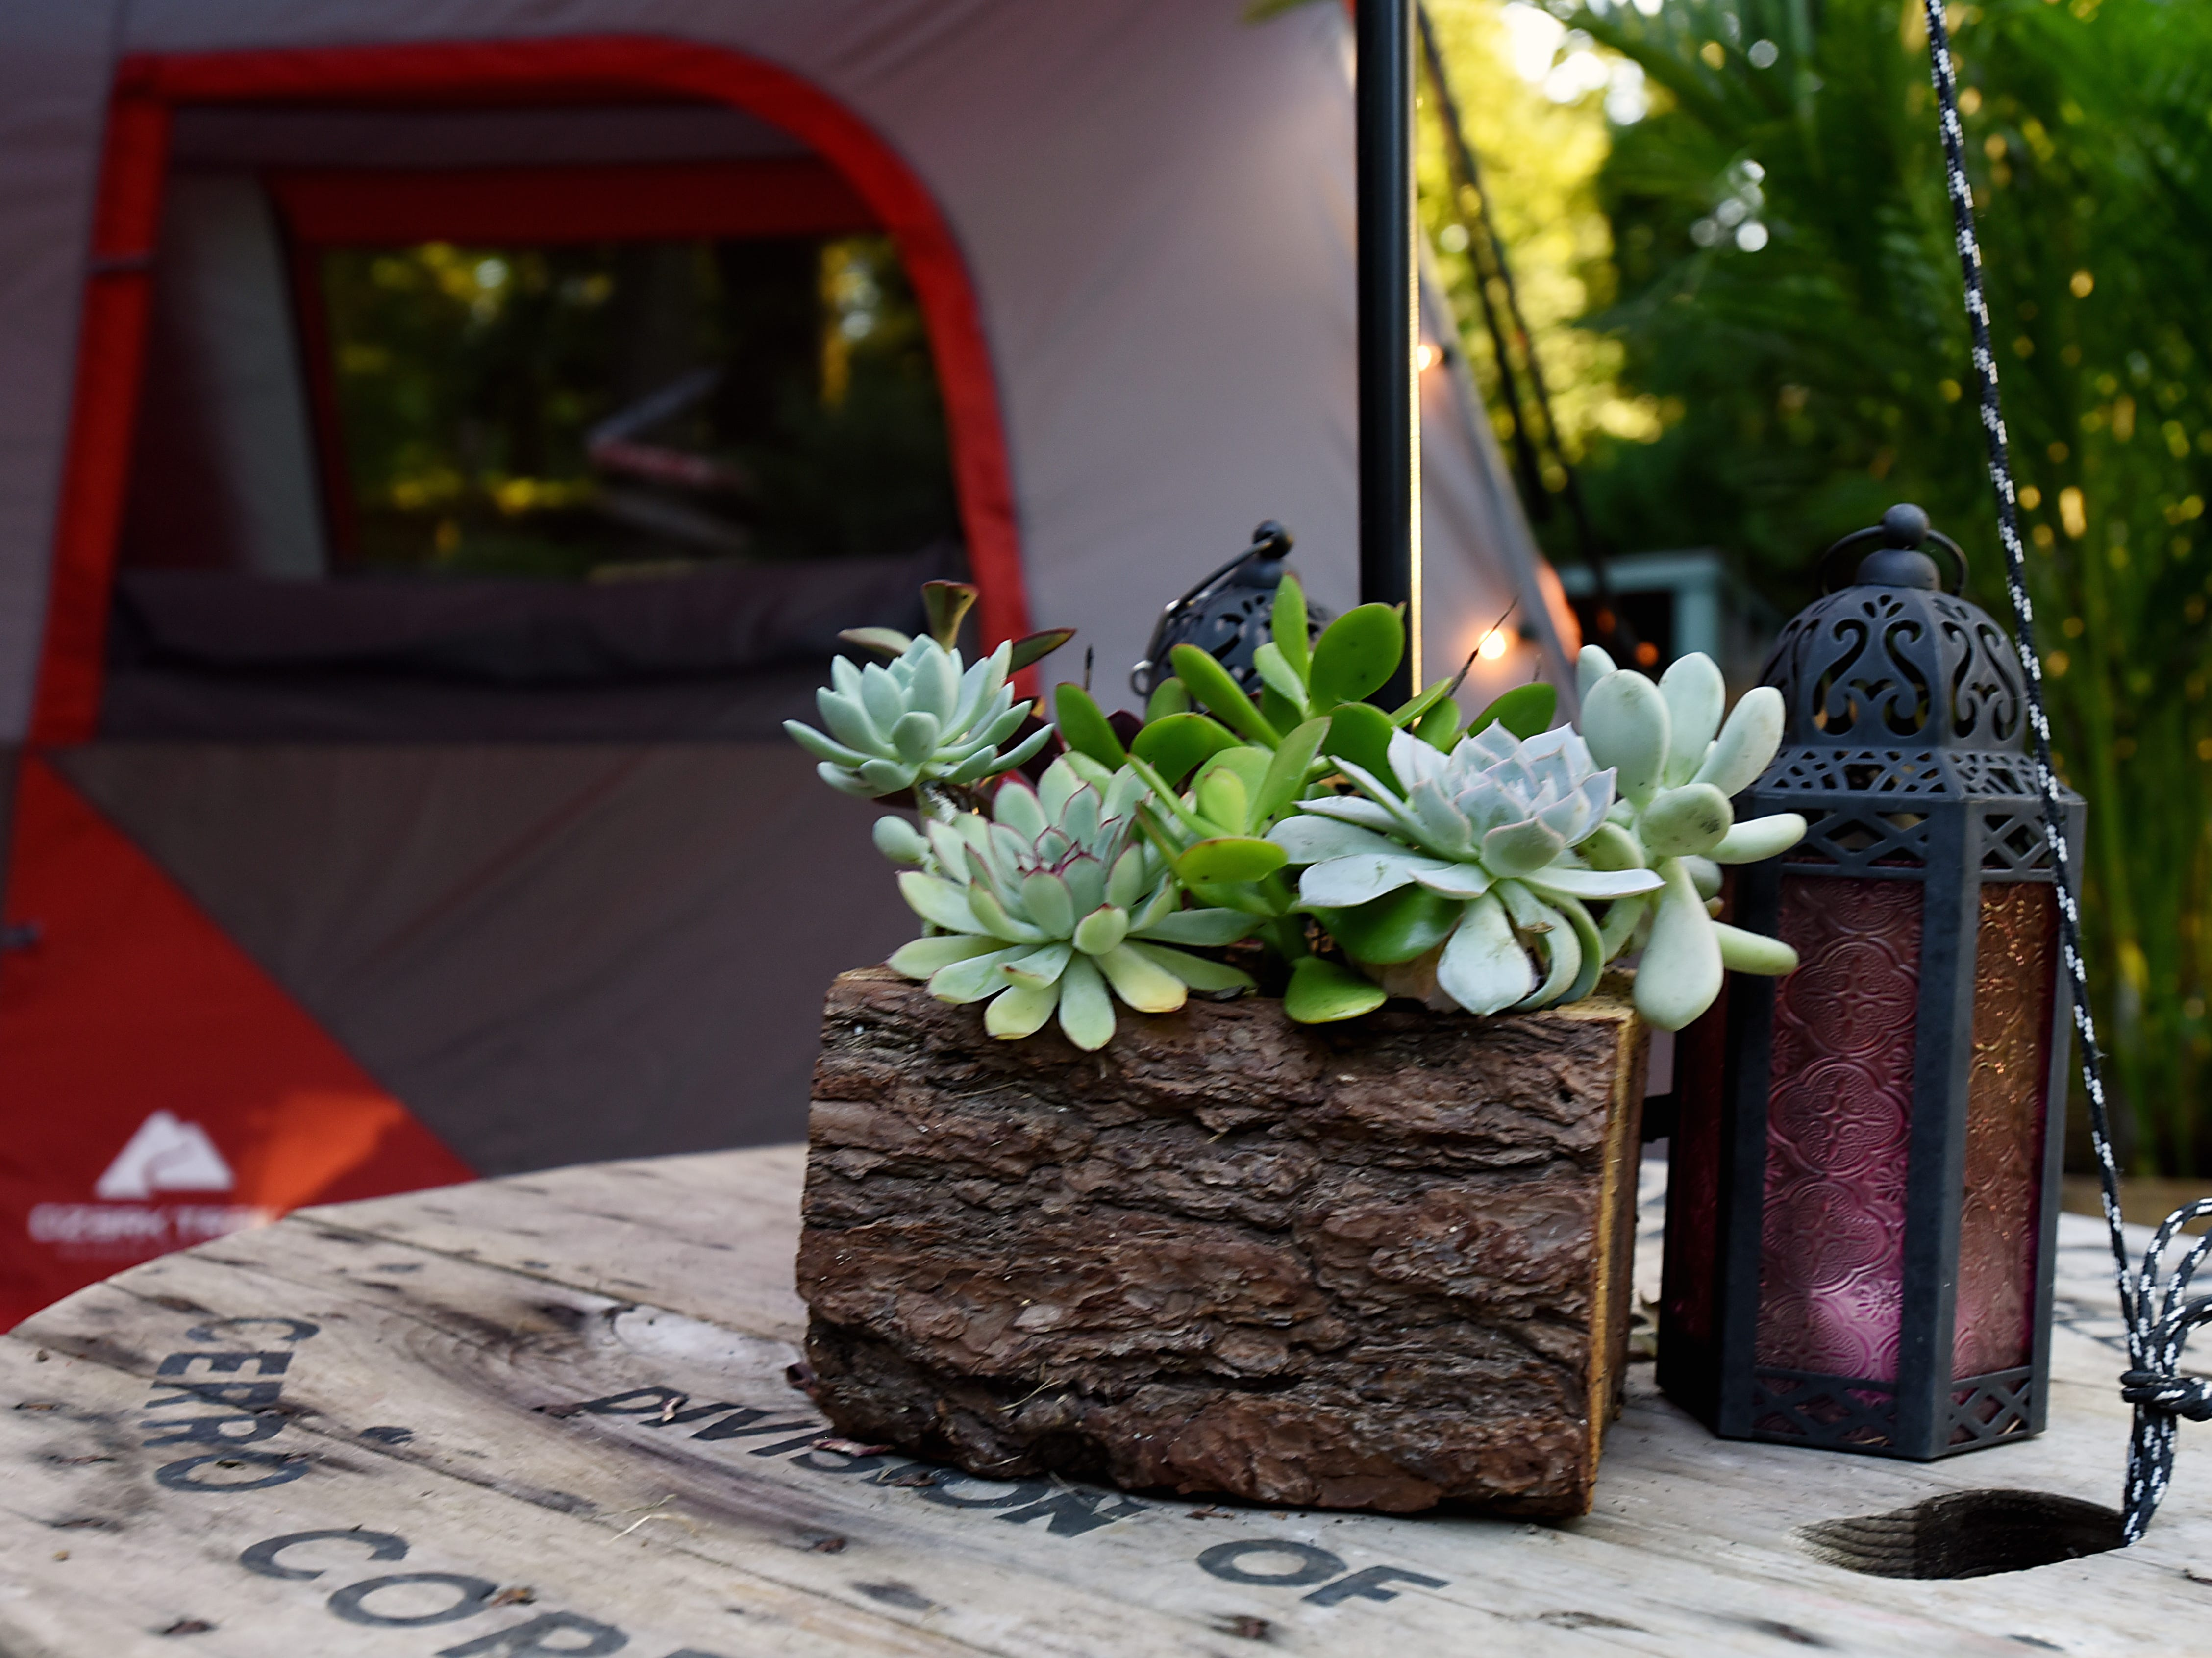 Melissa Ricapito and Mark Pyrka decide to rent out a tent in their backyard on Airbnb as a joke, much to their surprise it's been a hit. The tent rental allows access to all the backyard amenities the West Milford home has to offer. Succulents by the tent exterior shown on Thursday August 30, 2018.